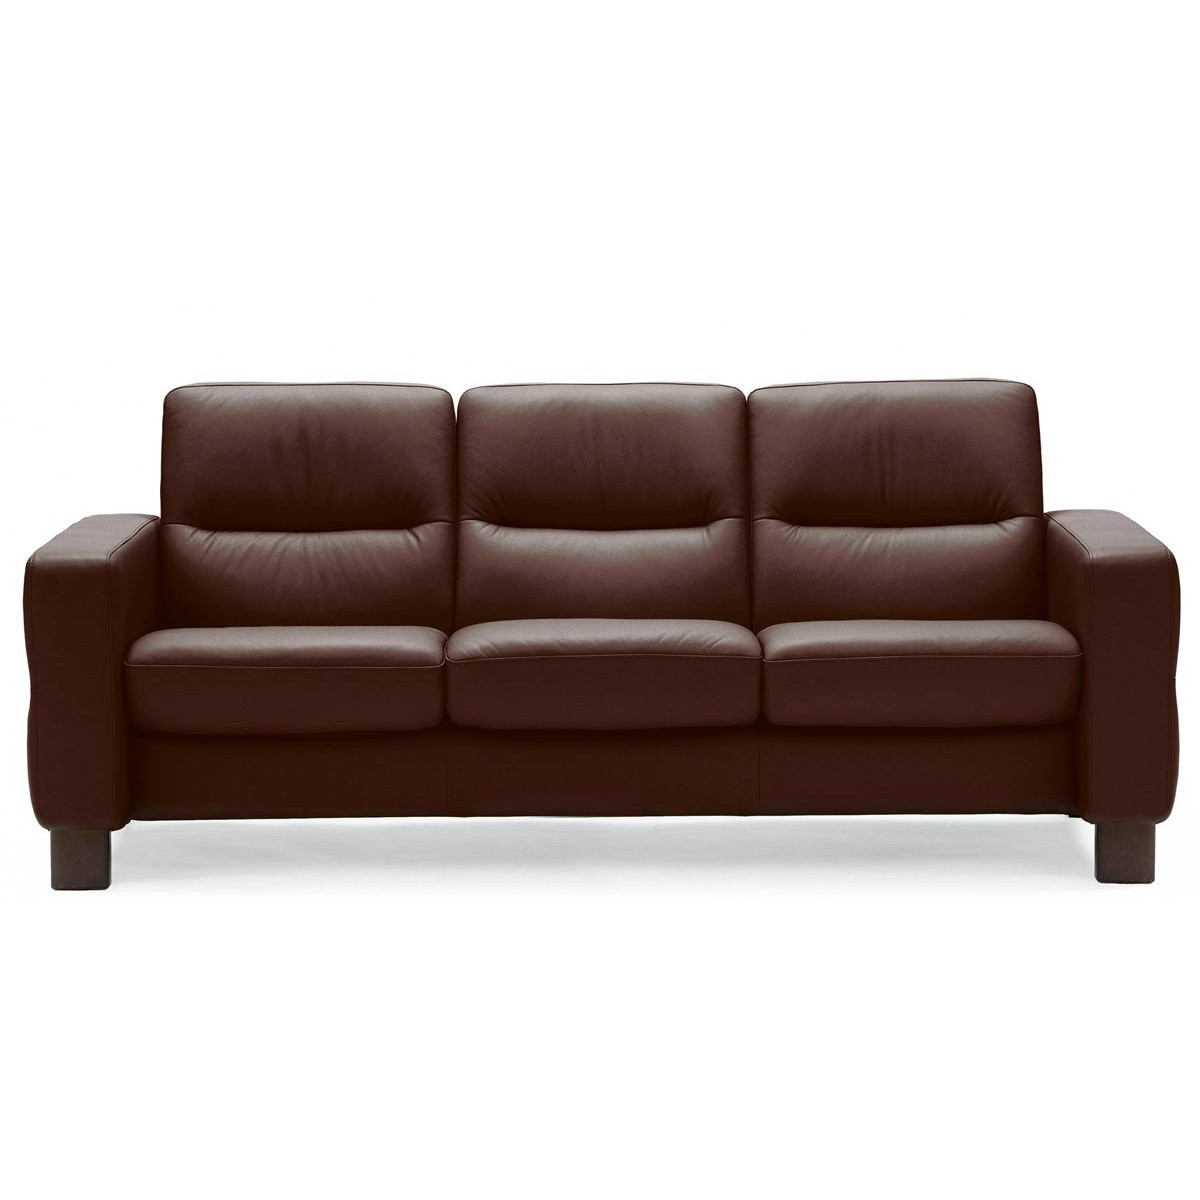 modern low back sofas olx leather sofa set kenya stressless wave from 2 995 00 by